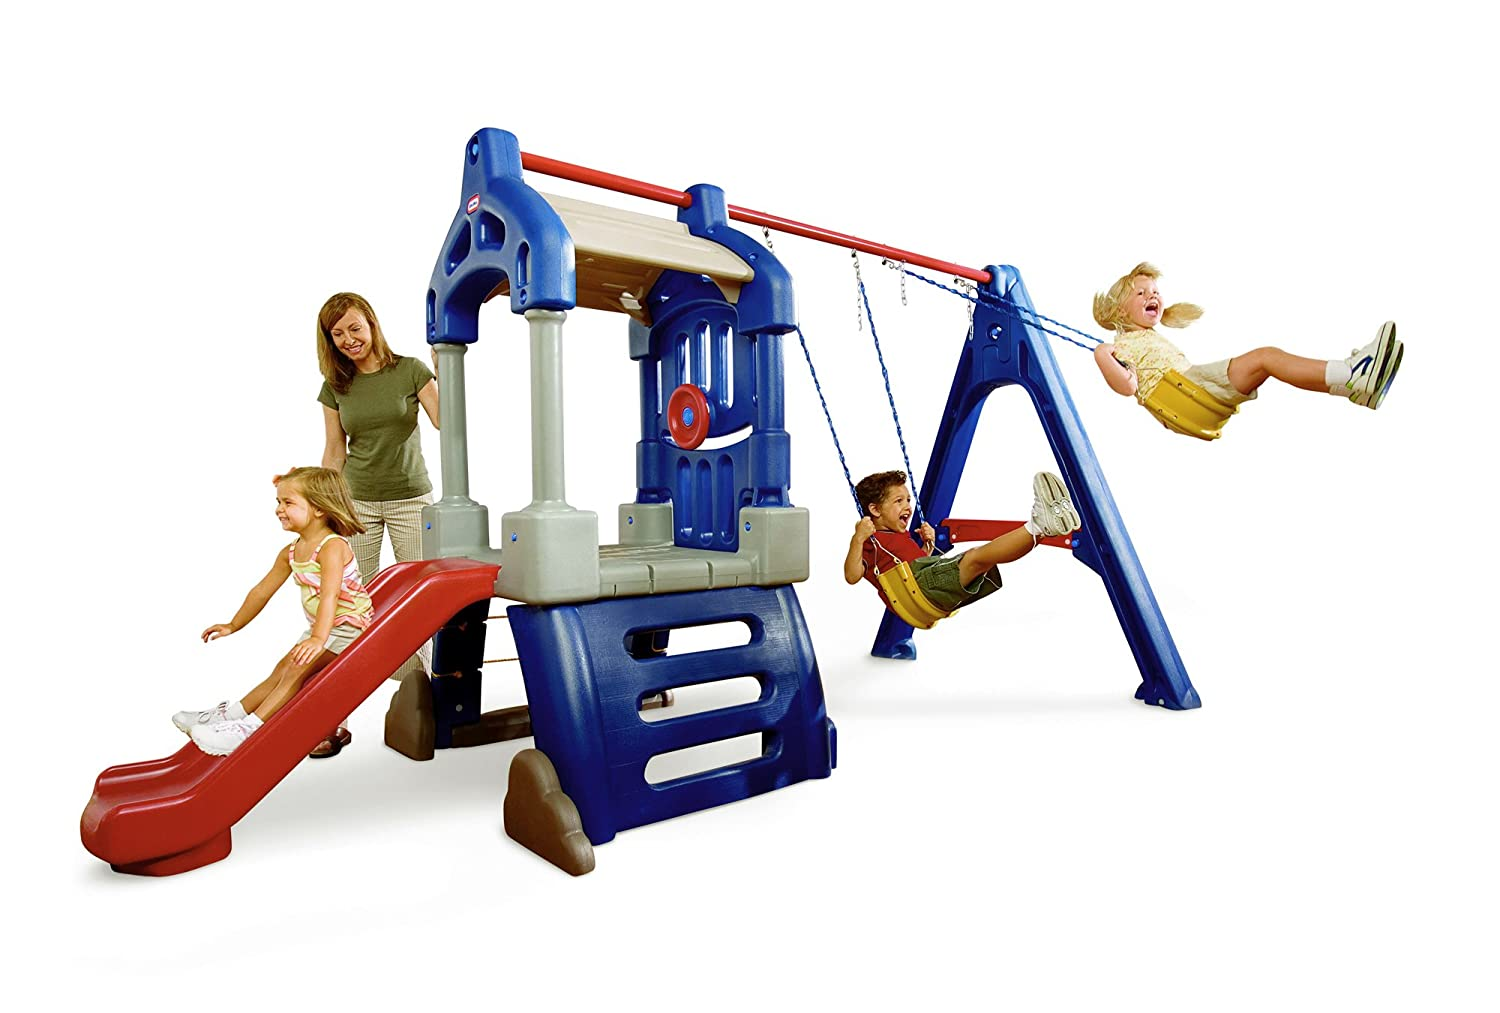 Walmart Outdoor Toys : Playhouse swing slide climbing wall rope ladder set kids